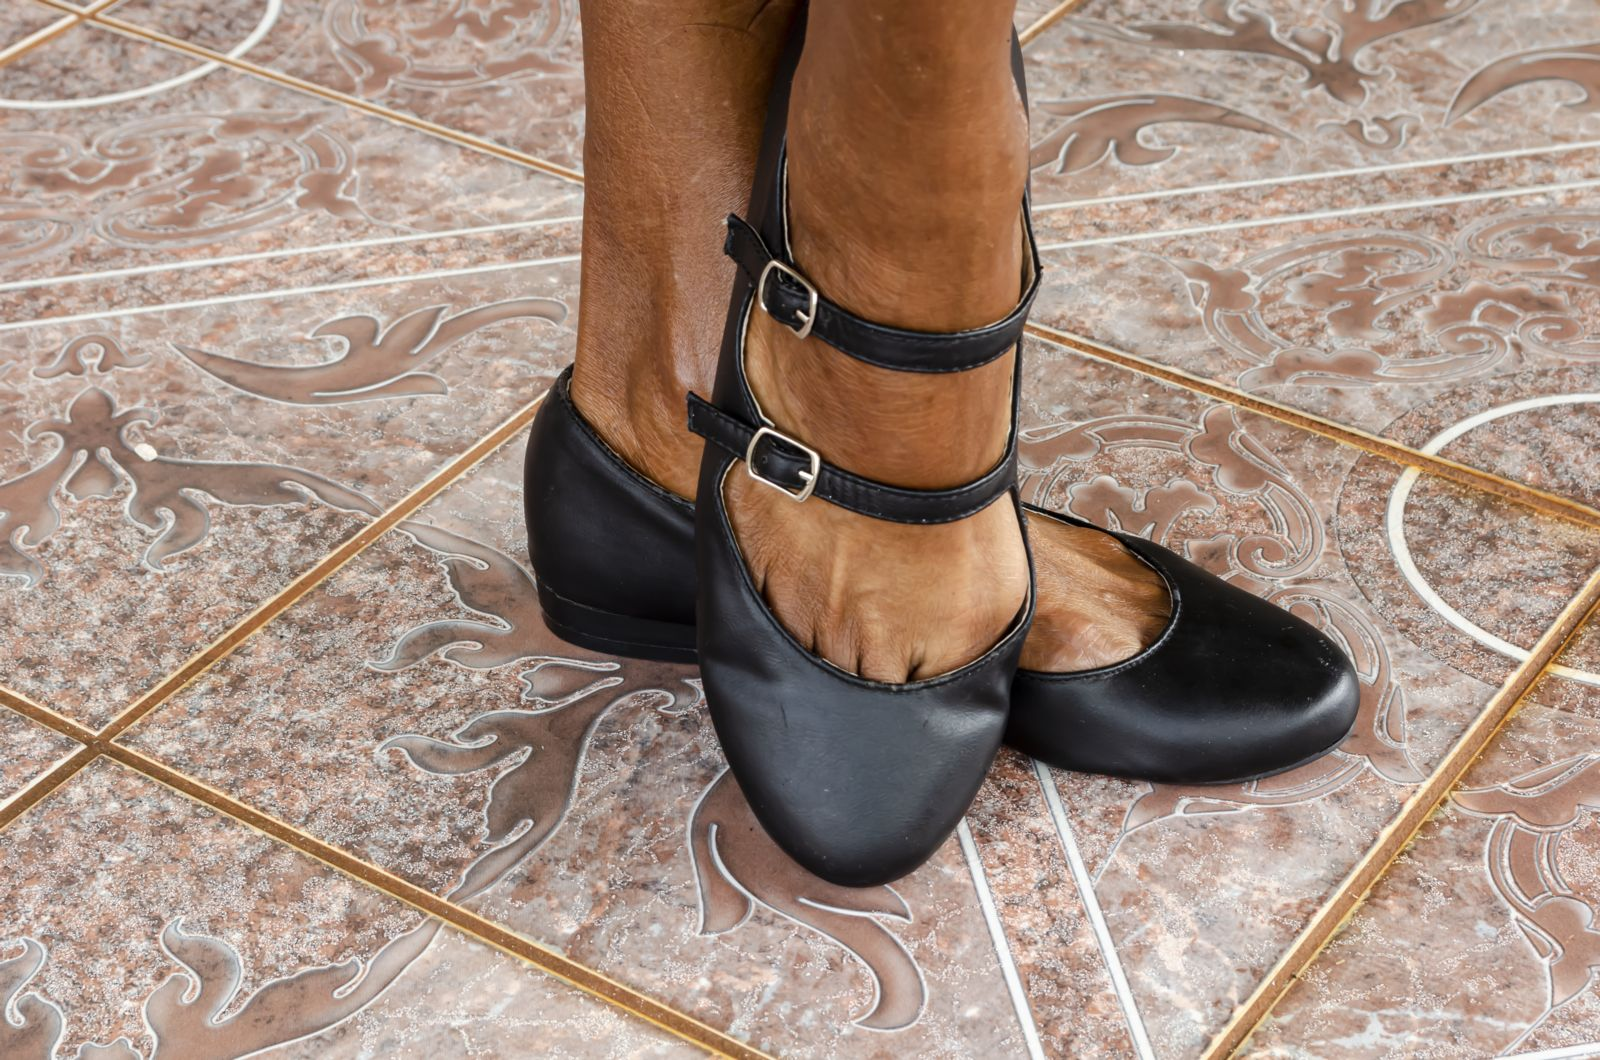 Michelle Obama rocks a mean flat and she wants you to do the same!